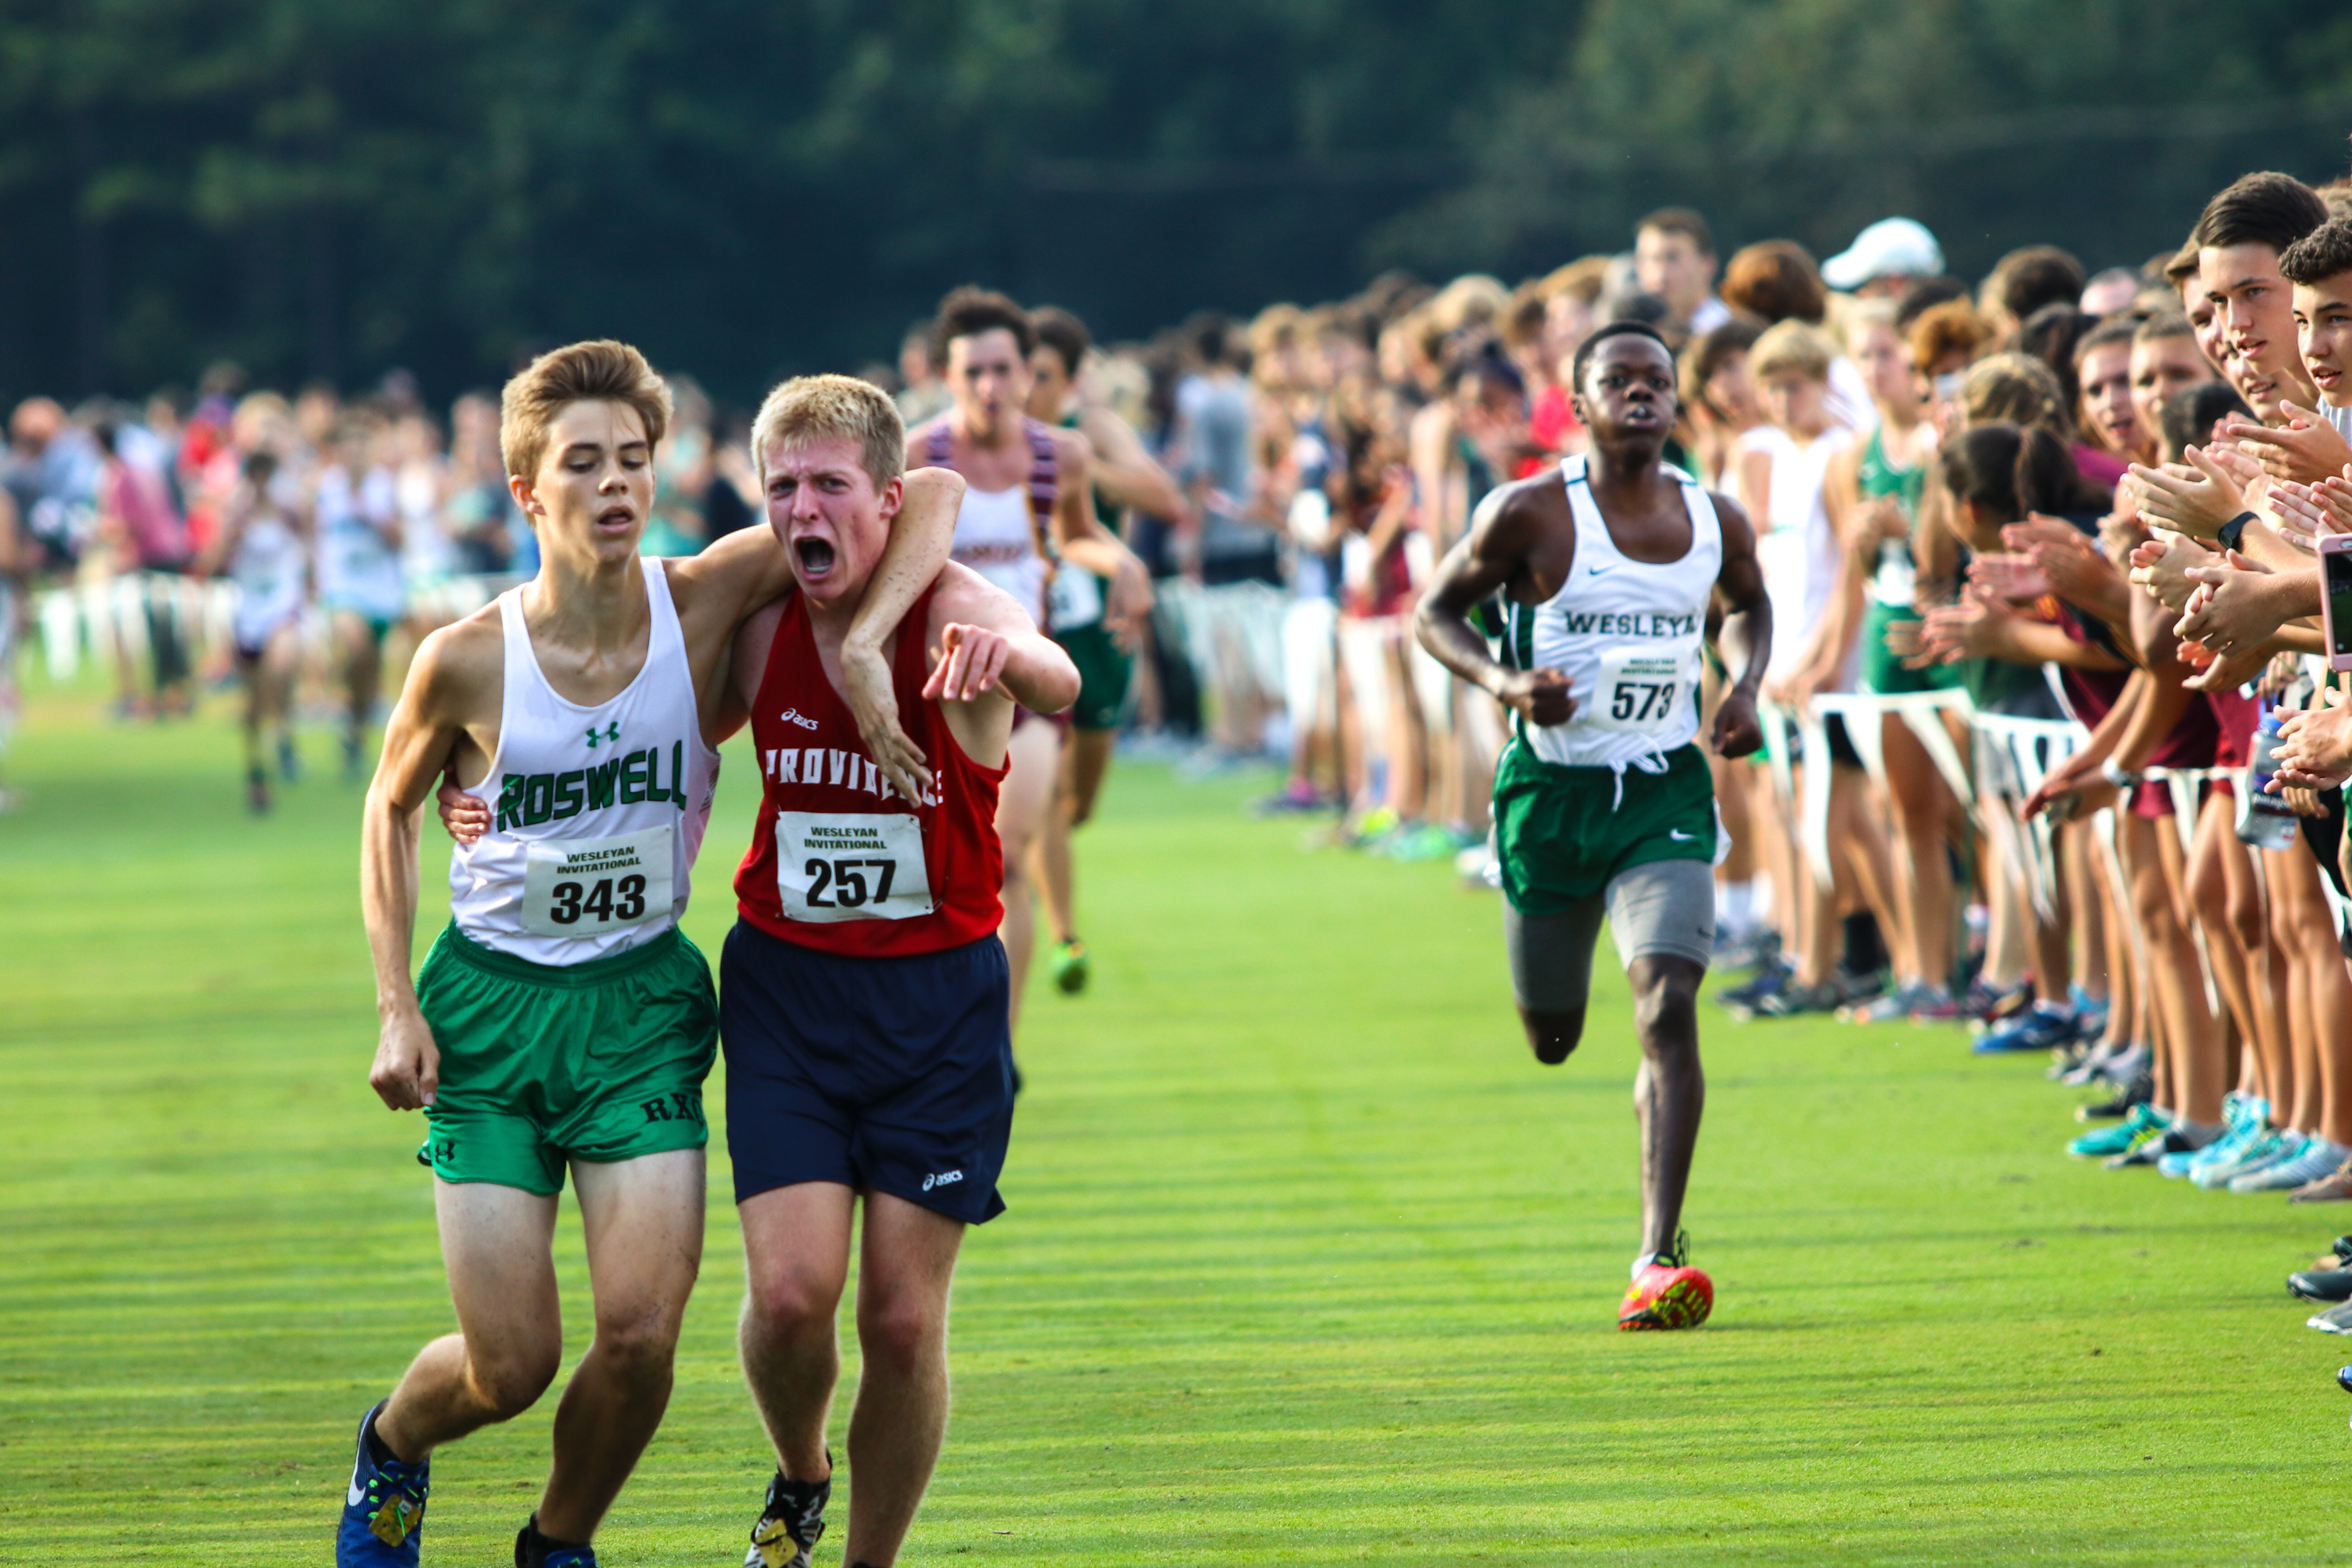 11alive Com High School Runner Carries Competitor To The